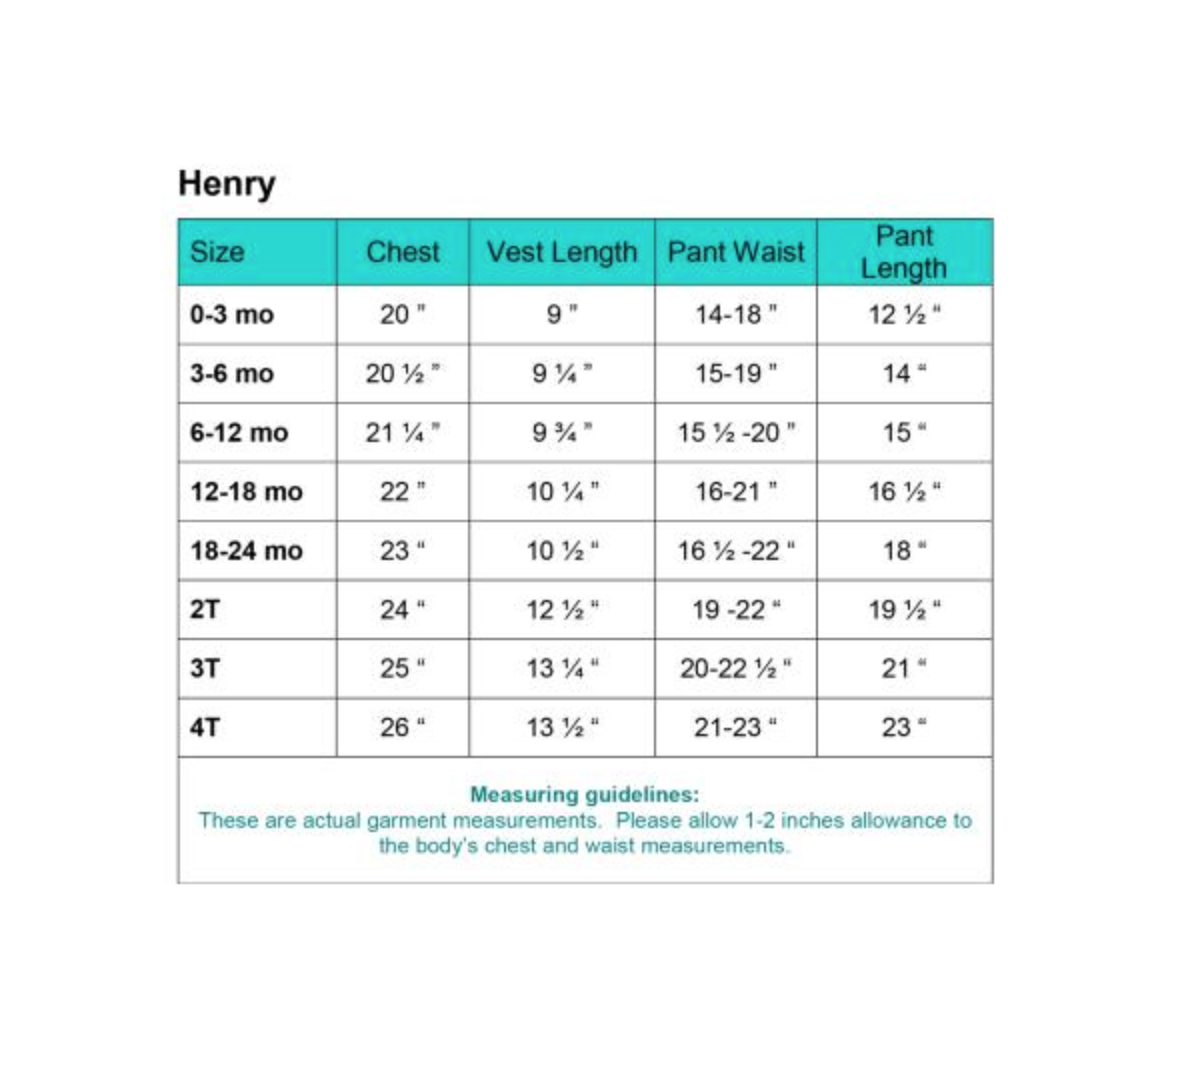 sizing-chart-henry.png